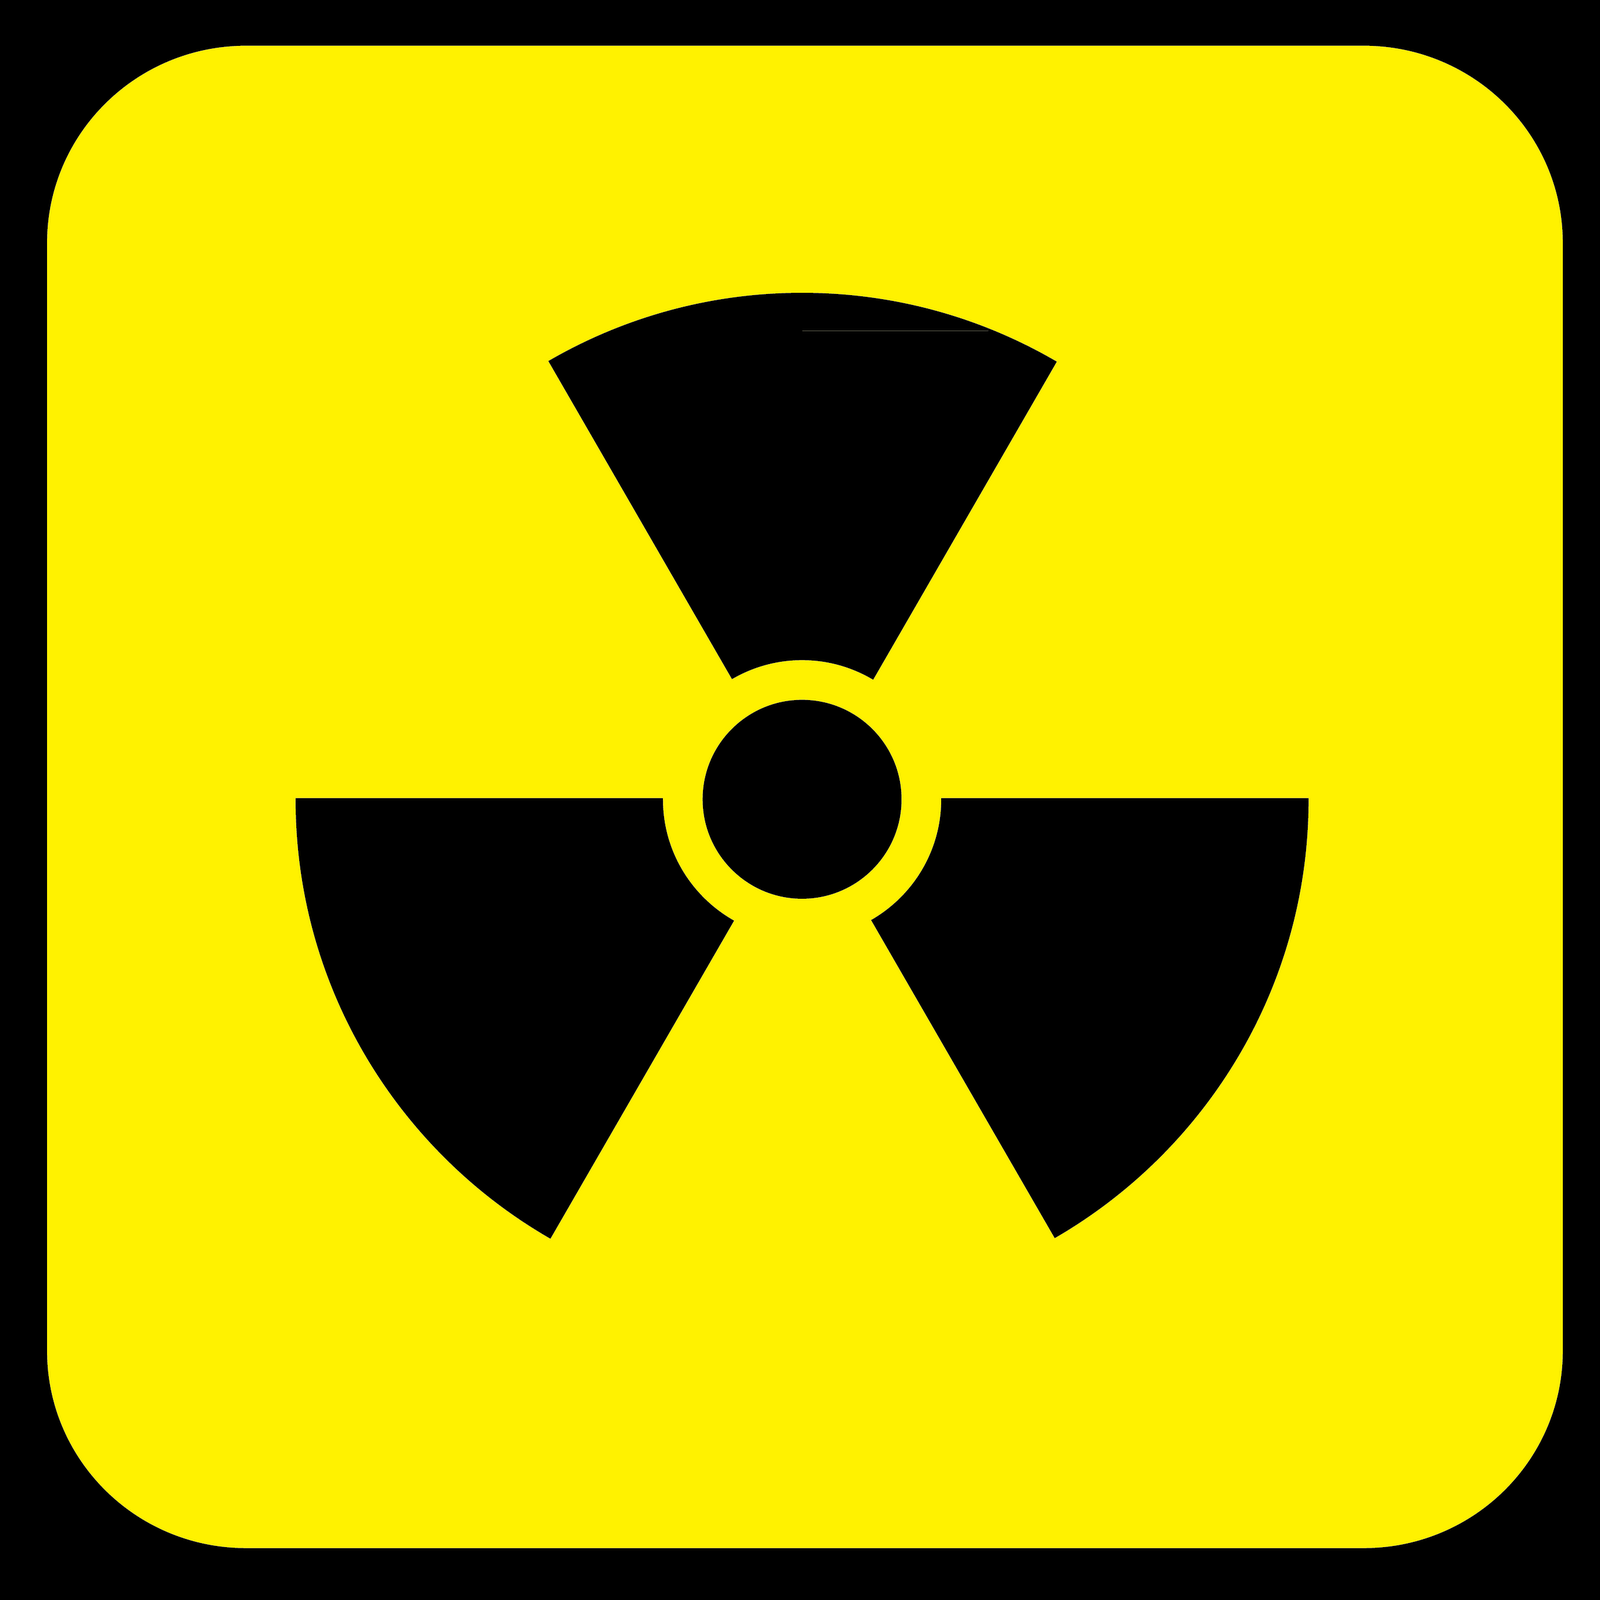 File:Nuclear symbol.svg - Wikimedia Commons